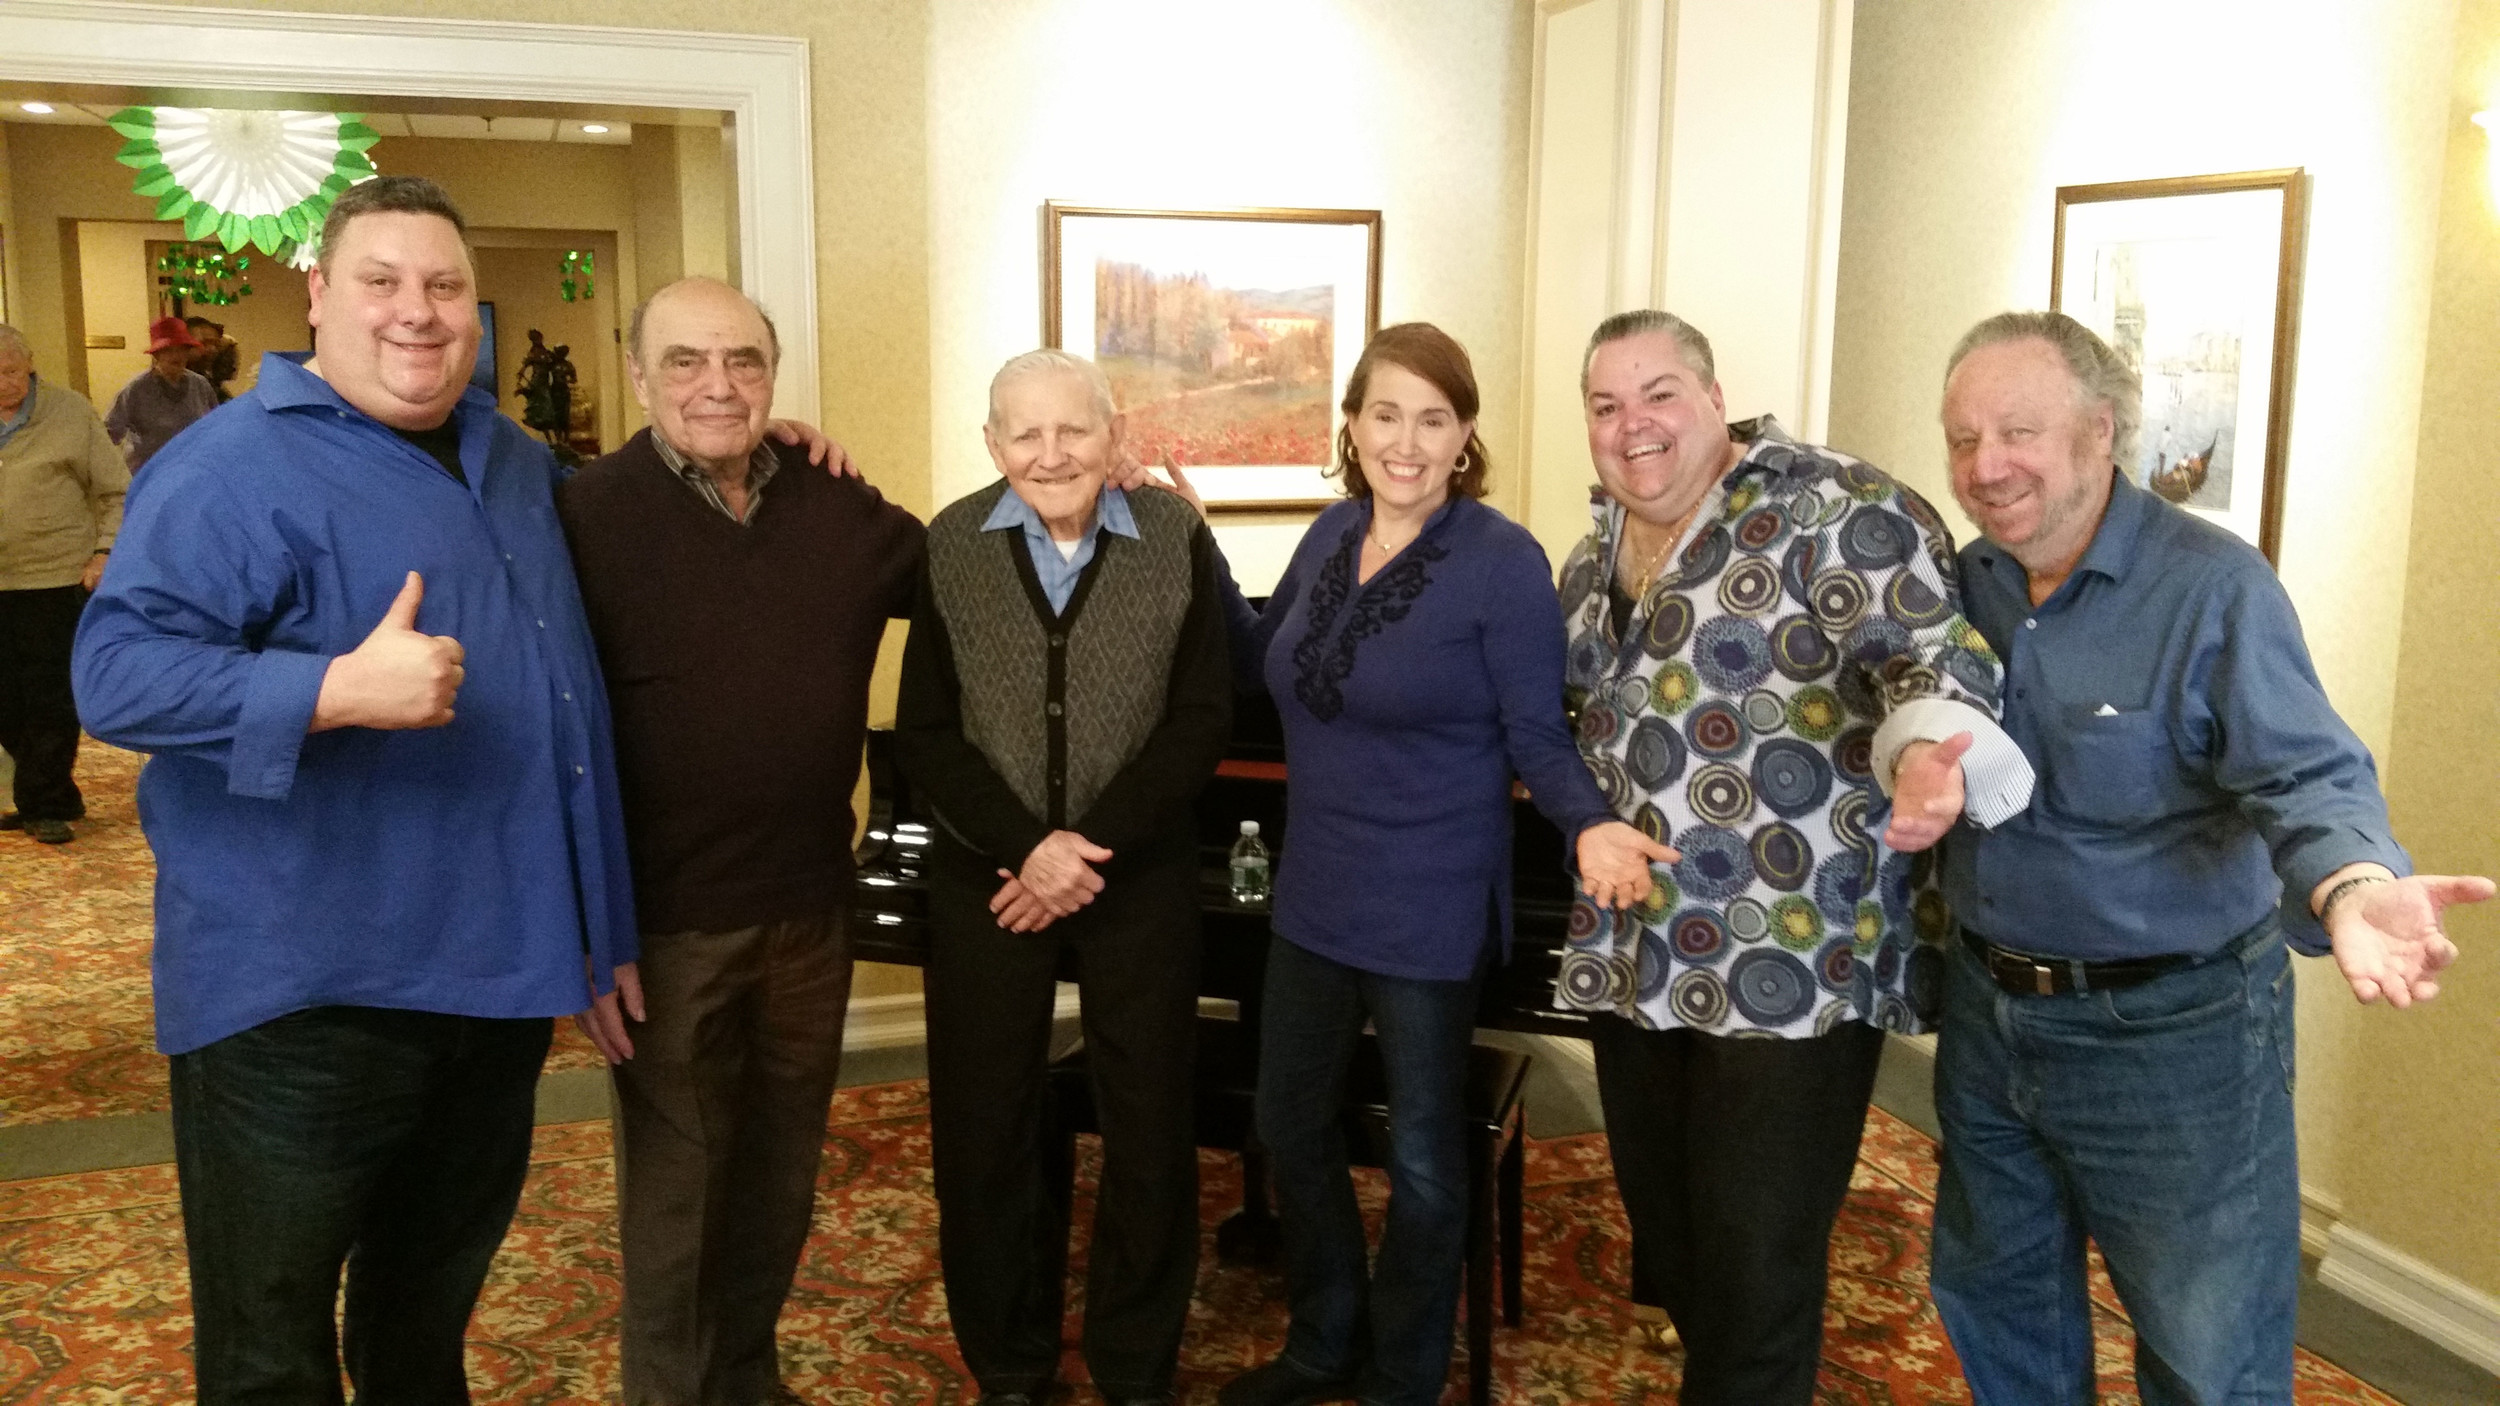 Left to right, Manuel Erias, George Saltz, Fred Mueller, Debbie Bazza, Pat Marone, and Les Bayer at The Regency Assisted Living. Each comedian volunteered their time to support Mueller's dreams.